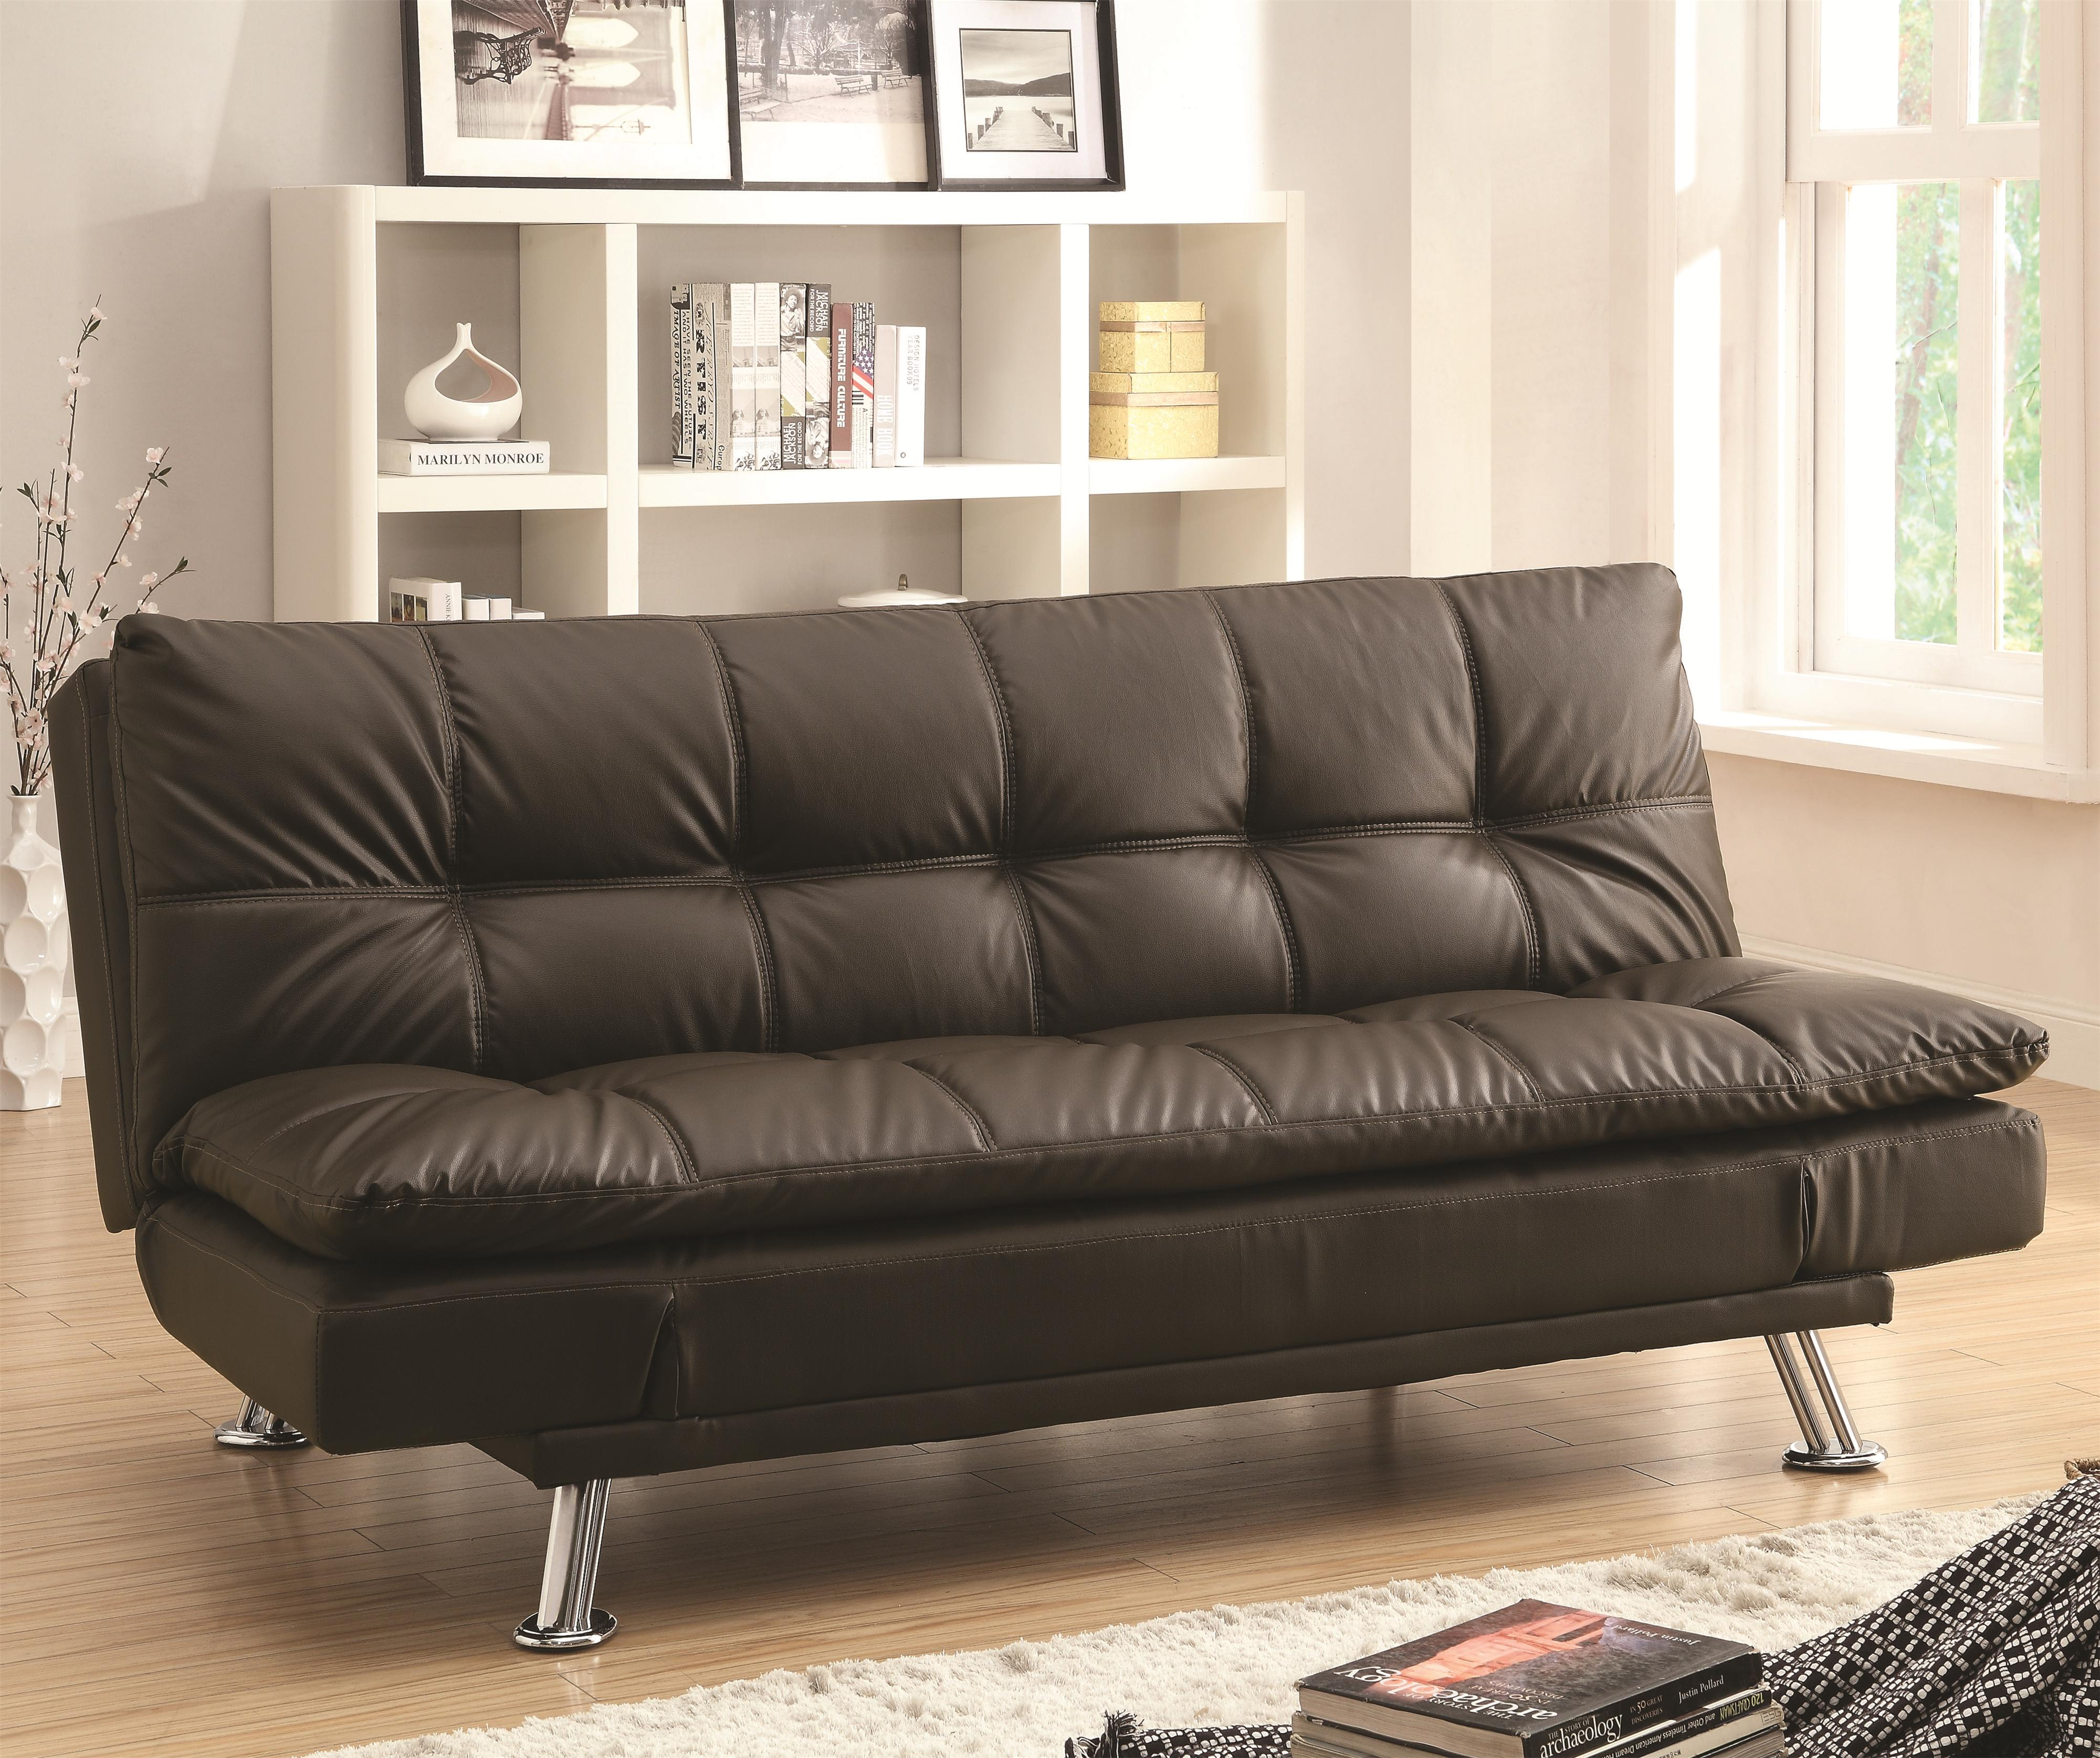 Dilleston Sofa Bed in Futon Style by Coaster at Northeast Factory Direct